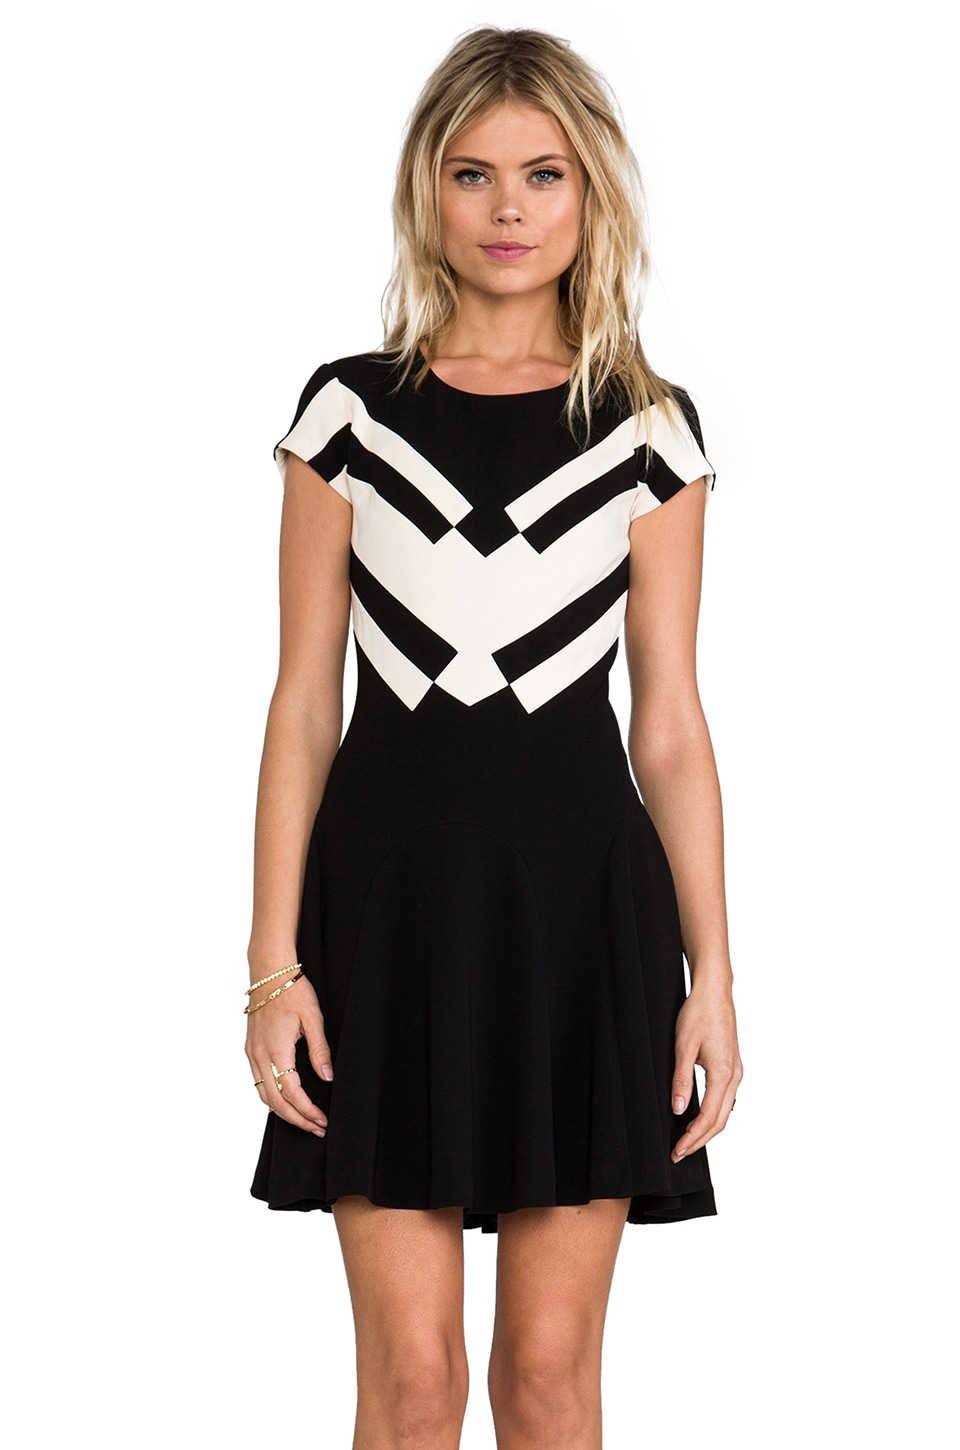 Diane von Furstenberg RUNWAY Gail Dress in Black/Ecru